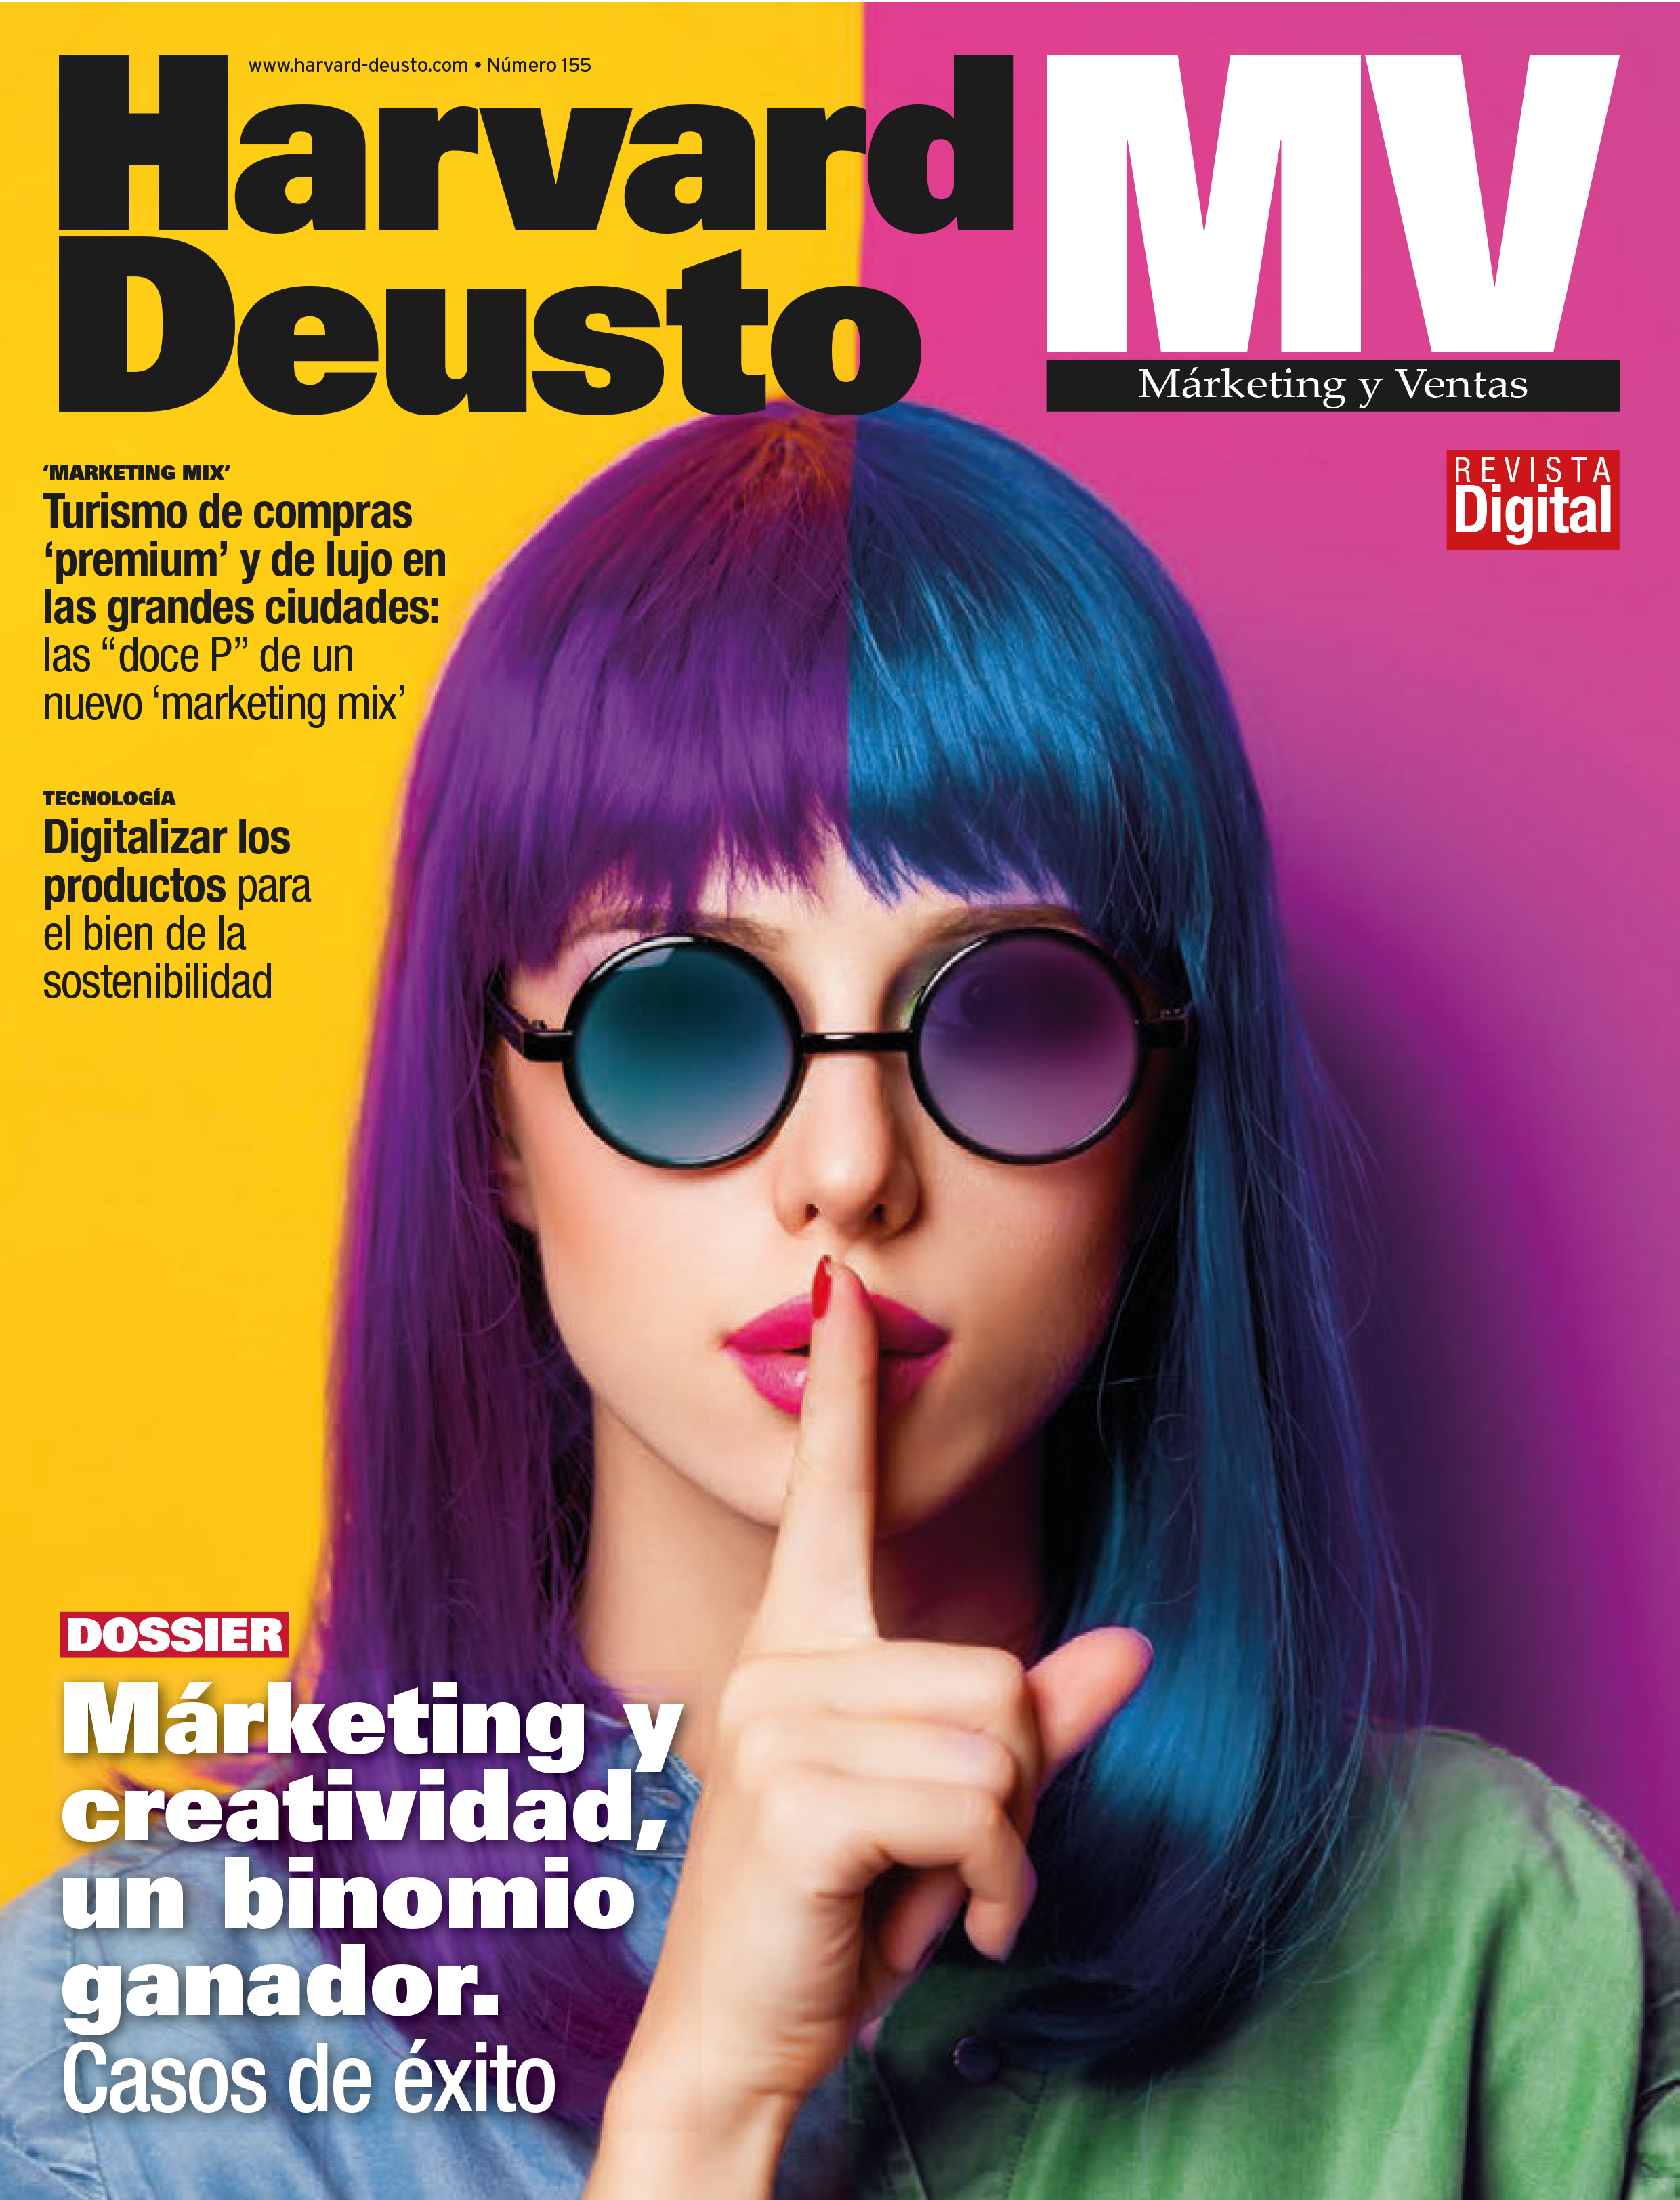 Portada última revista de Marketing y Ventas